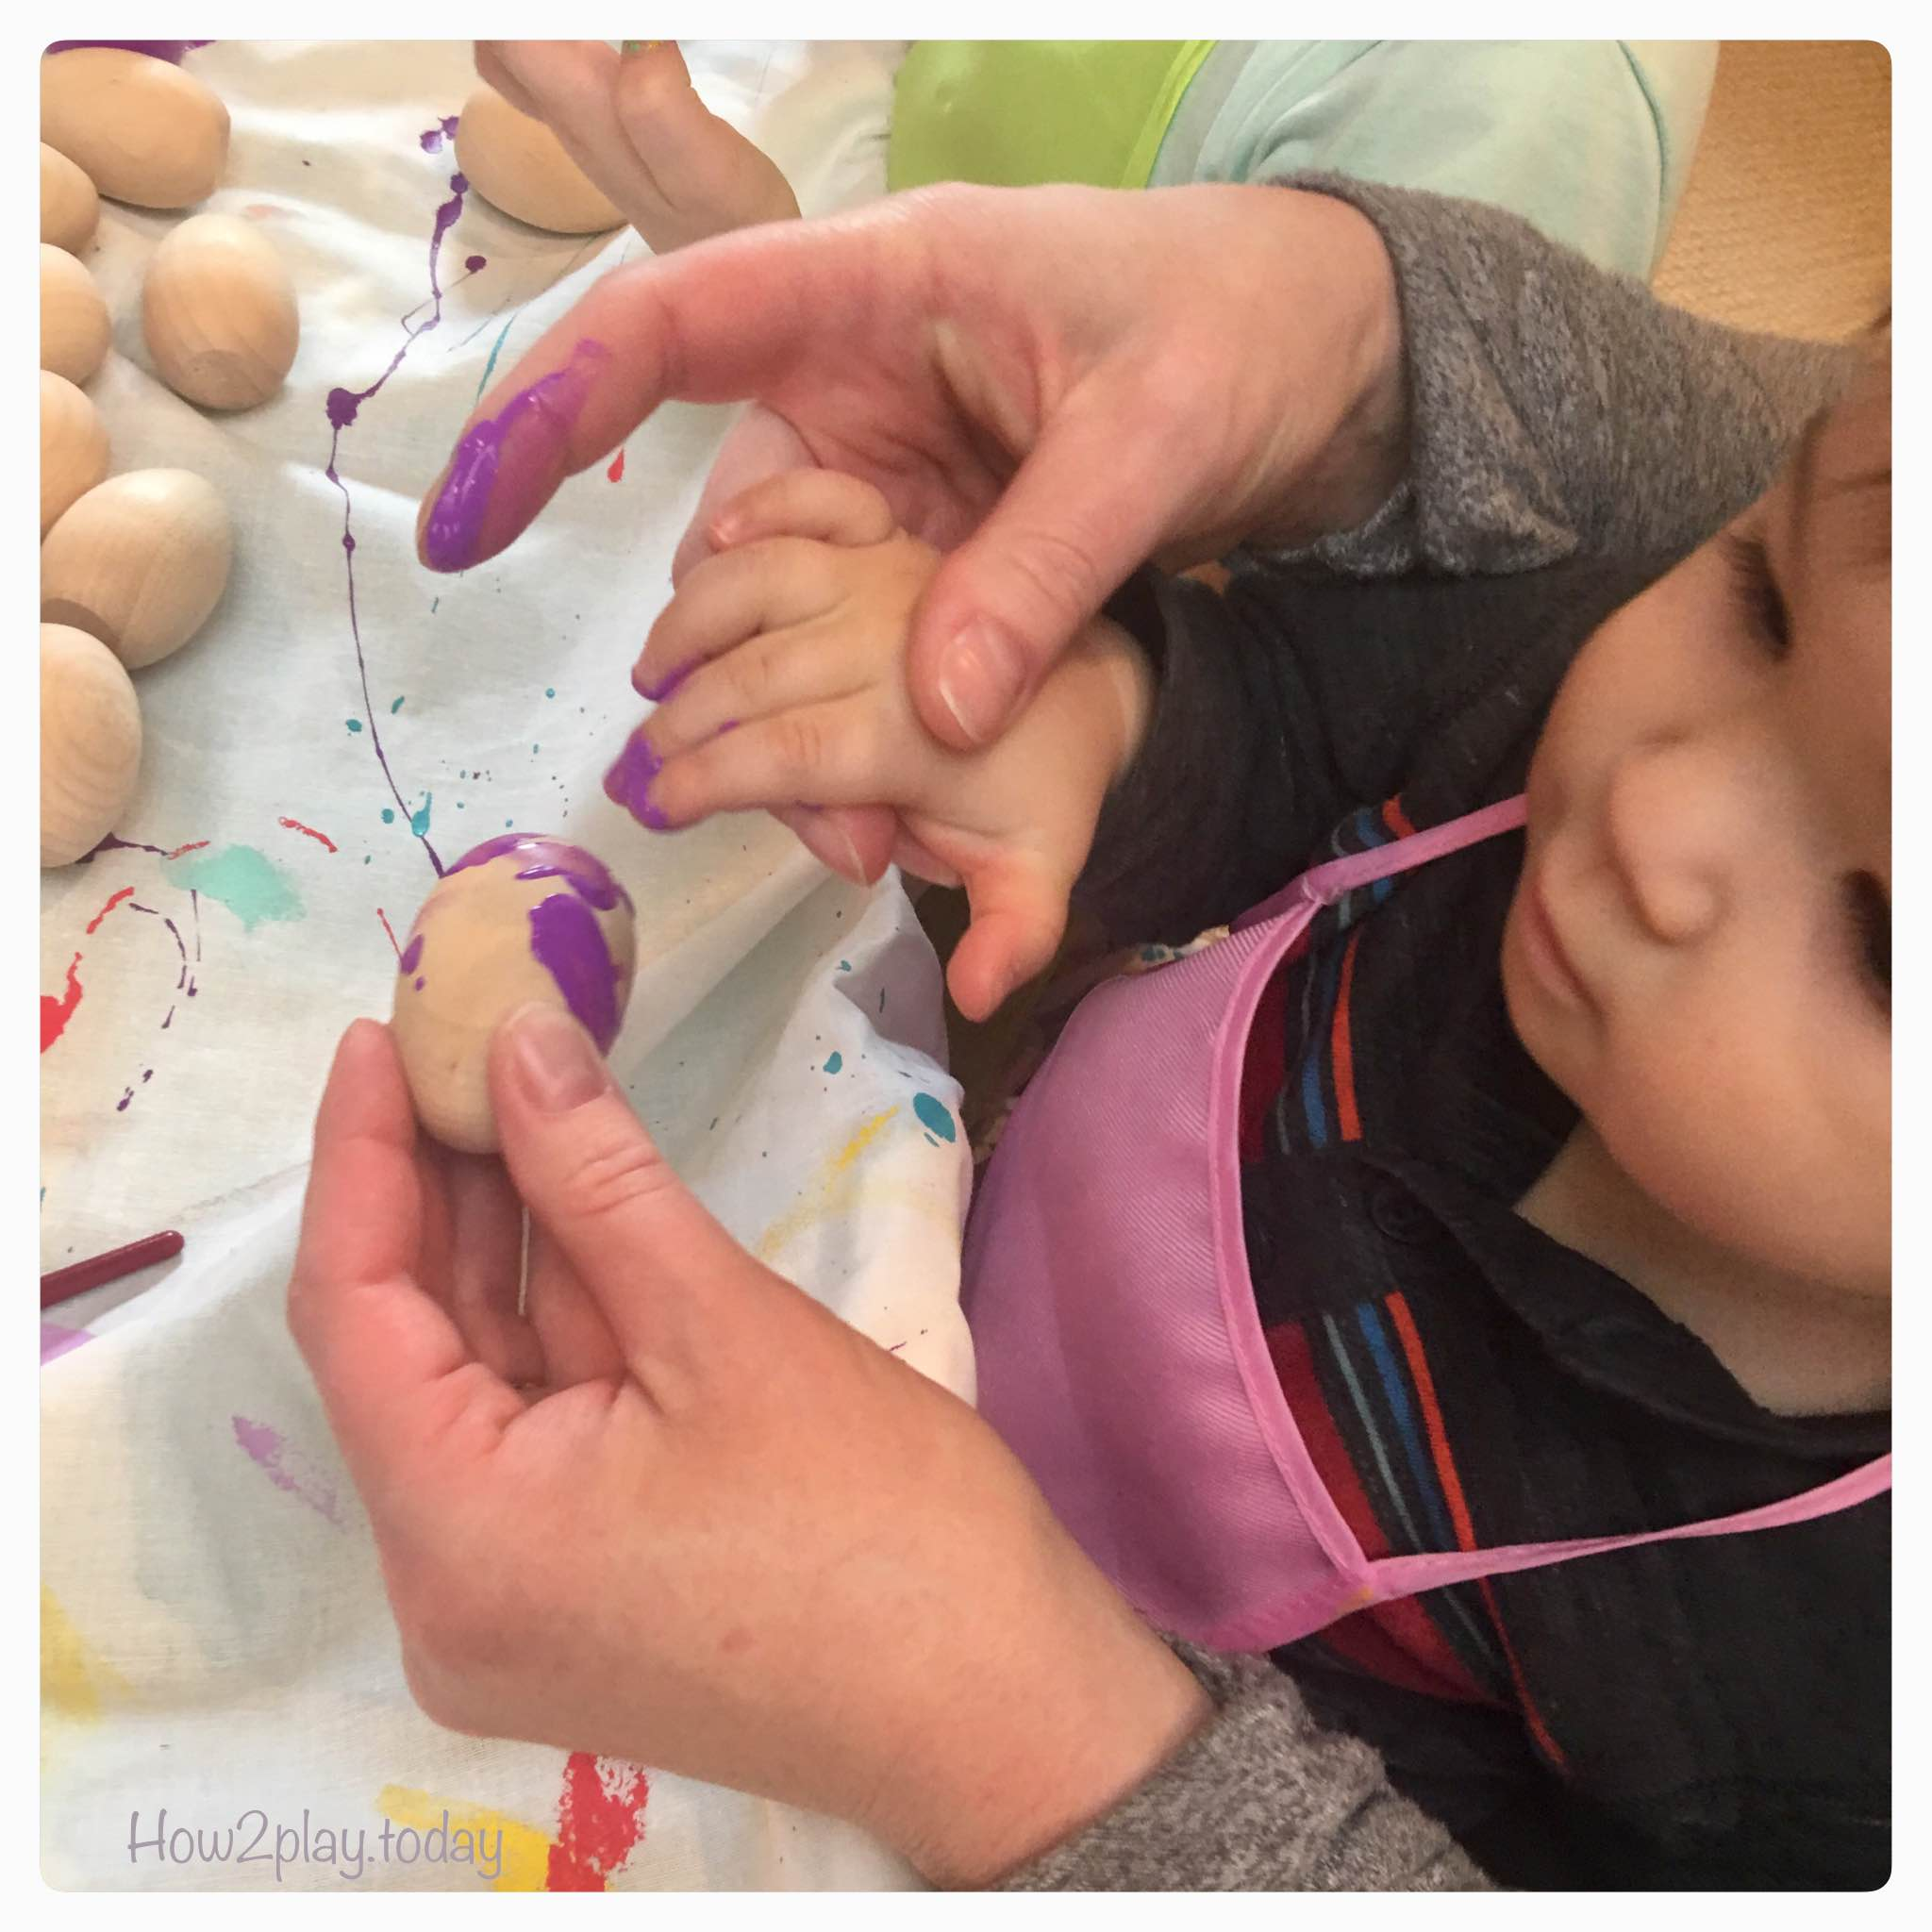 Creative DIY Easter egg art. This open-ended process art allows the kids to direct the art project by allowing them options and embracing the mess. The process becomes the fun focus and not necessarily the product because whatever the end result is, will be beautiful.